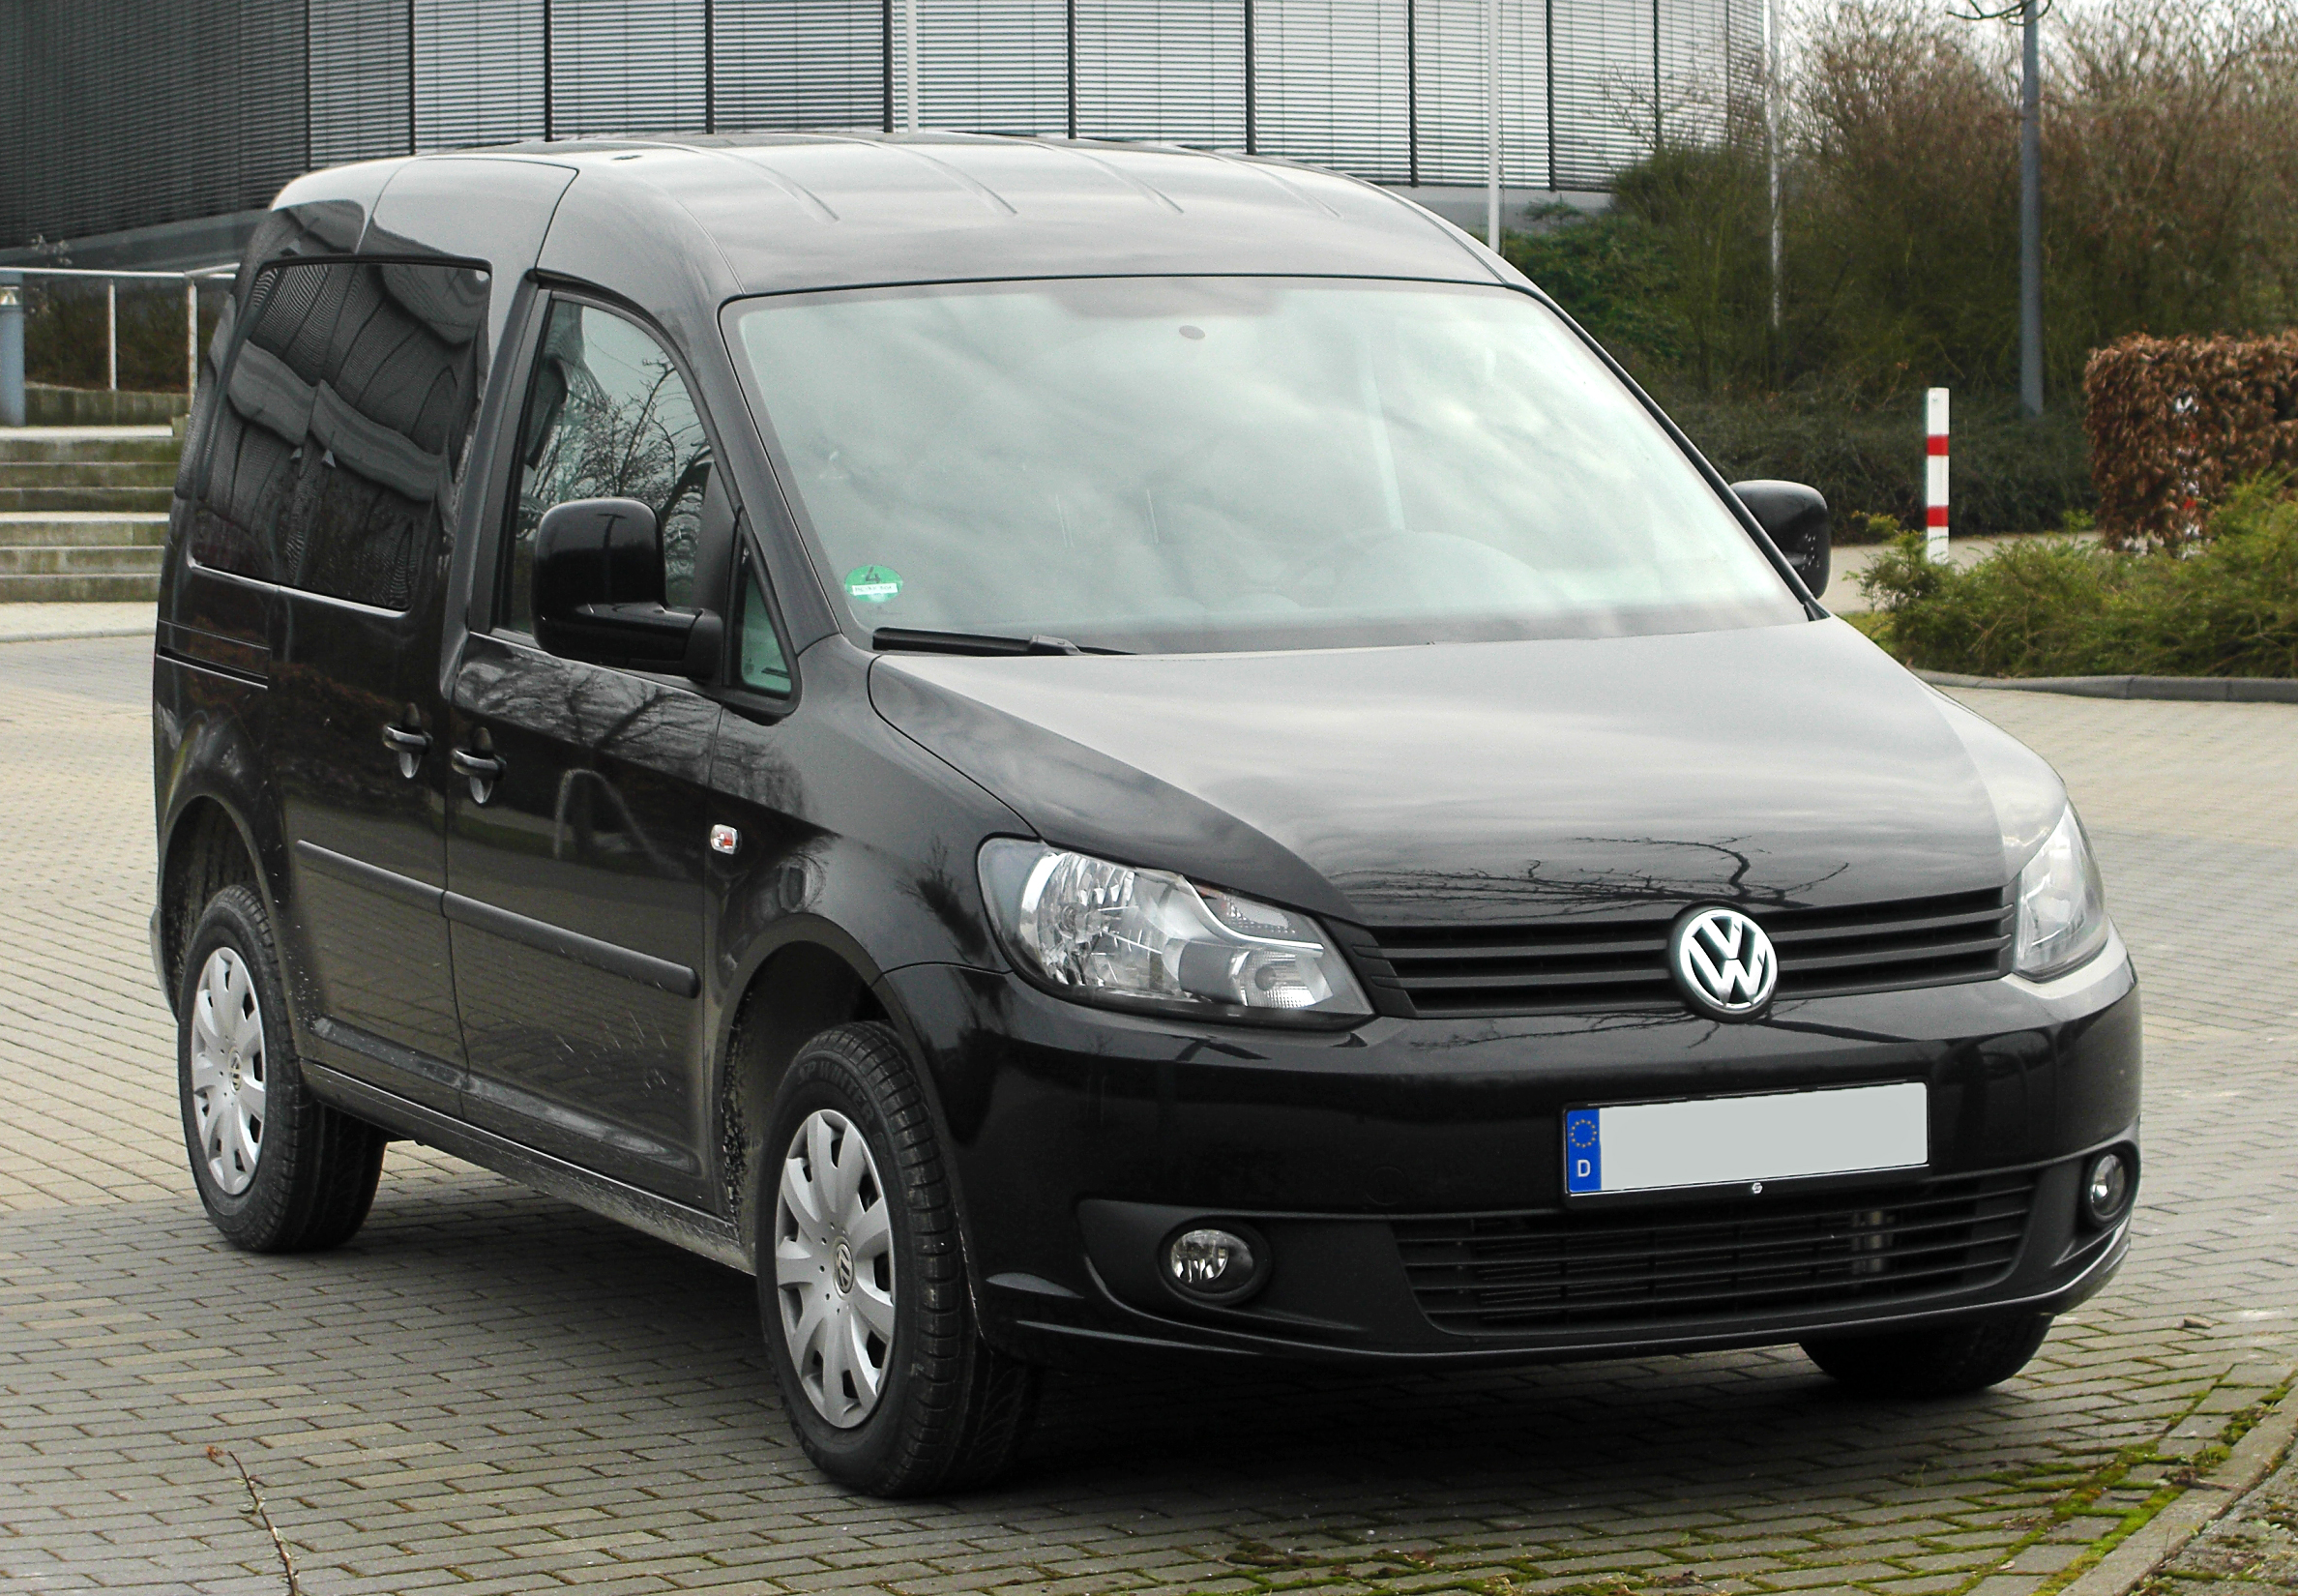 Berühmt My perfect Volkswagen Caddy (facelift). 3DTuning - probably the &EQ_27